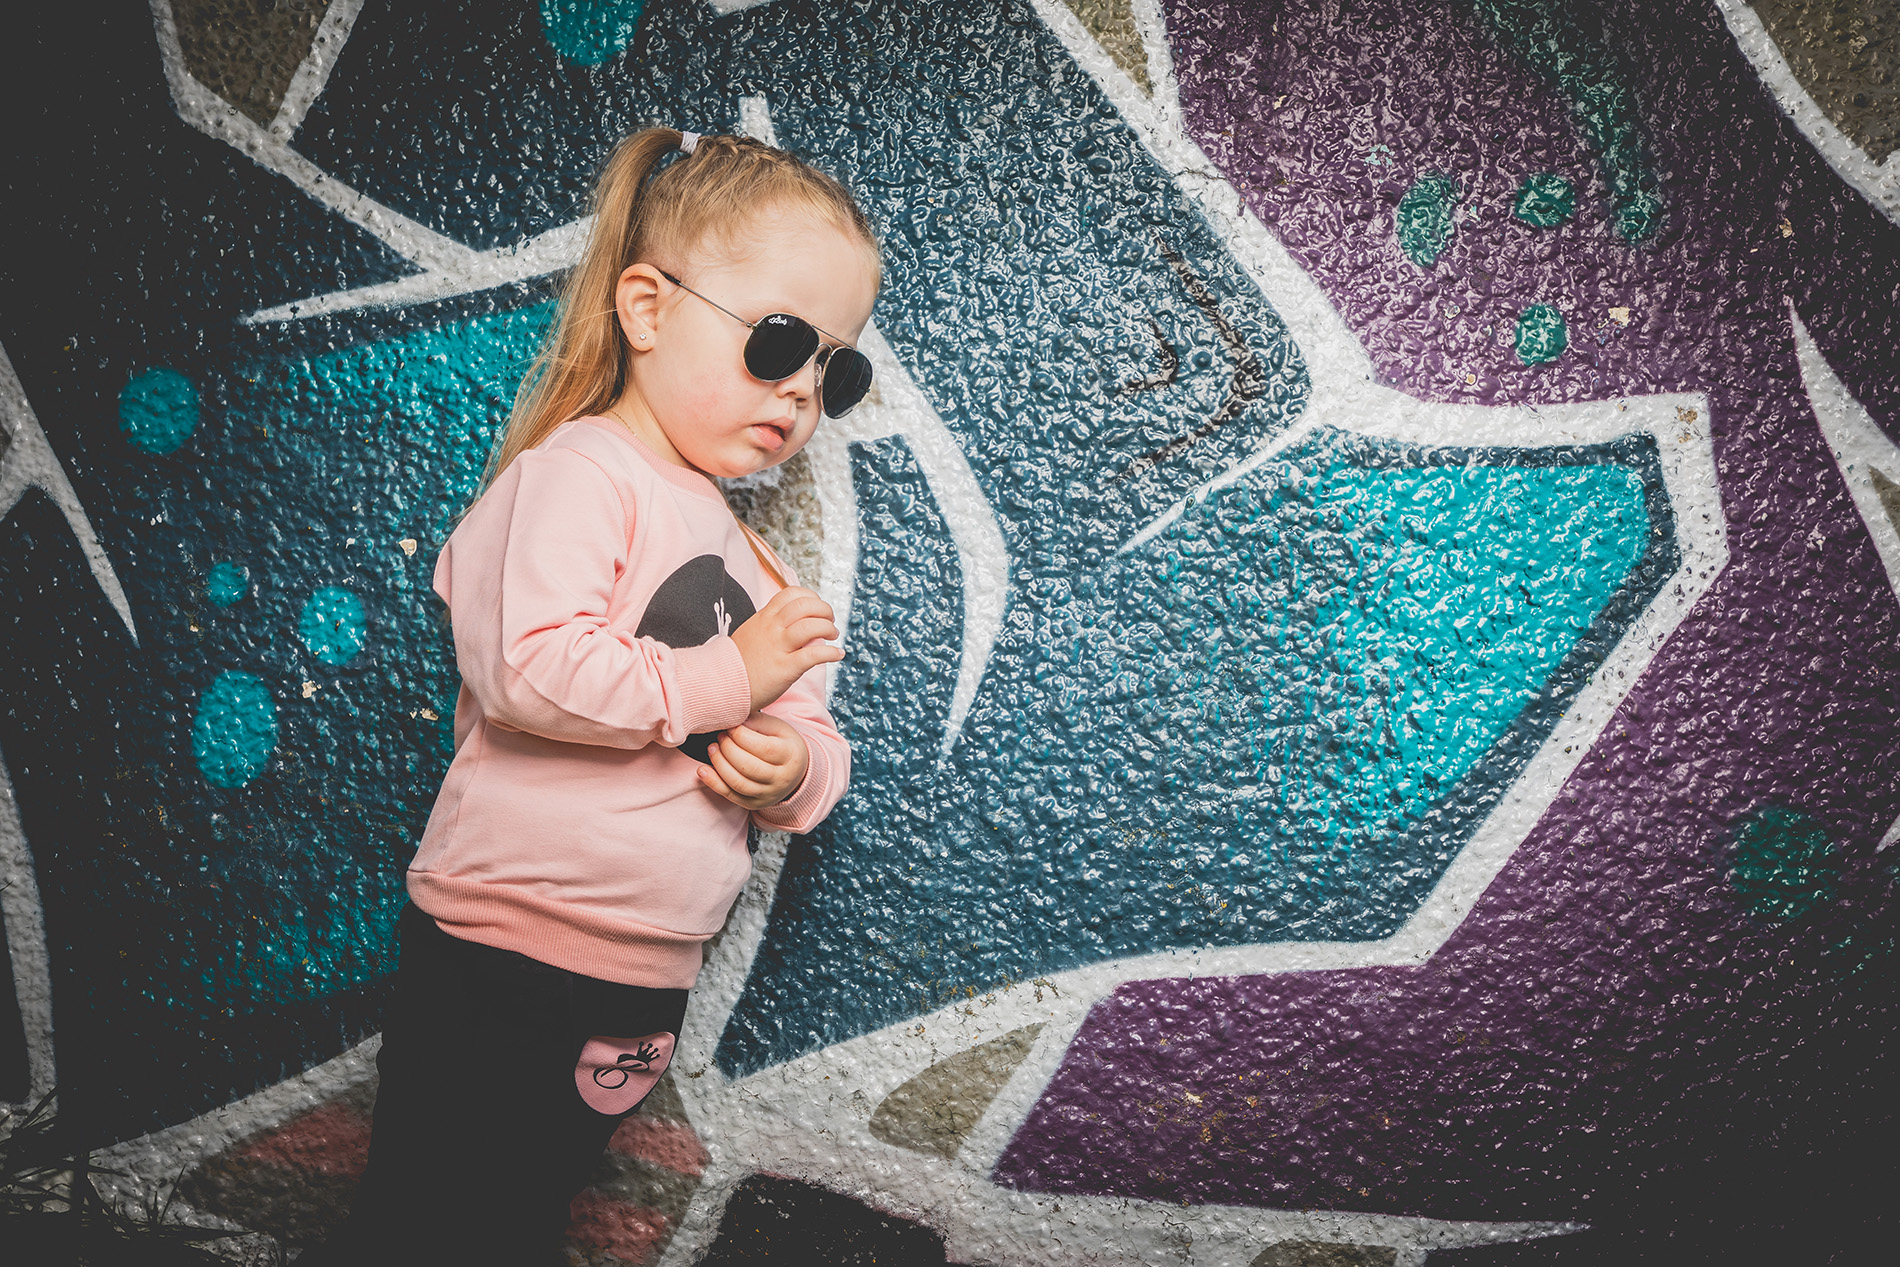 Where's Mummy! How to Reduce Separation Anxiety During Your Child's Dance Class